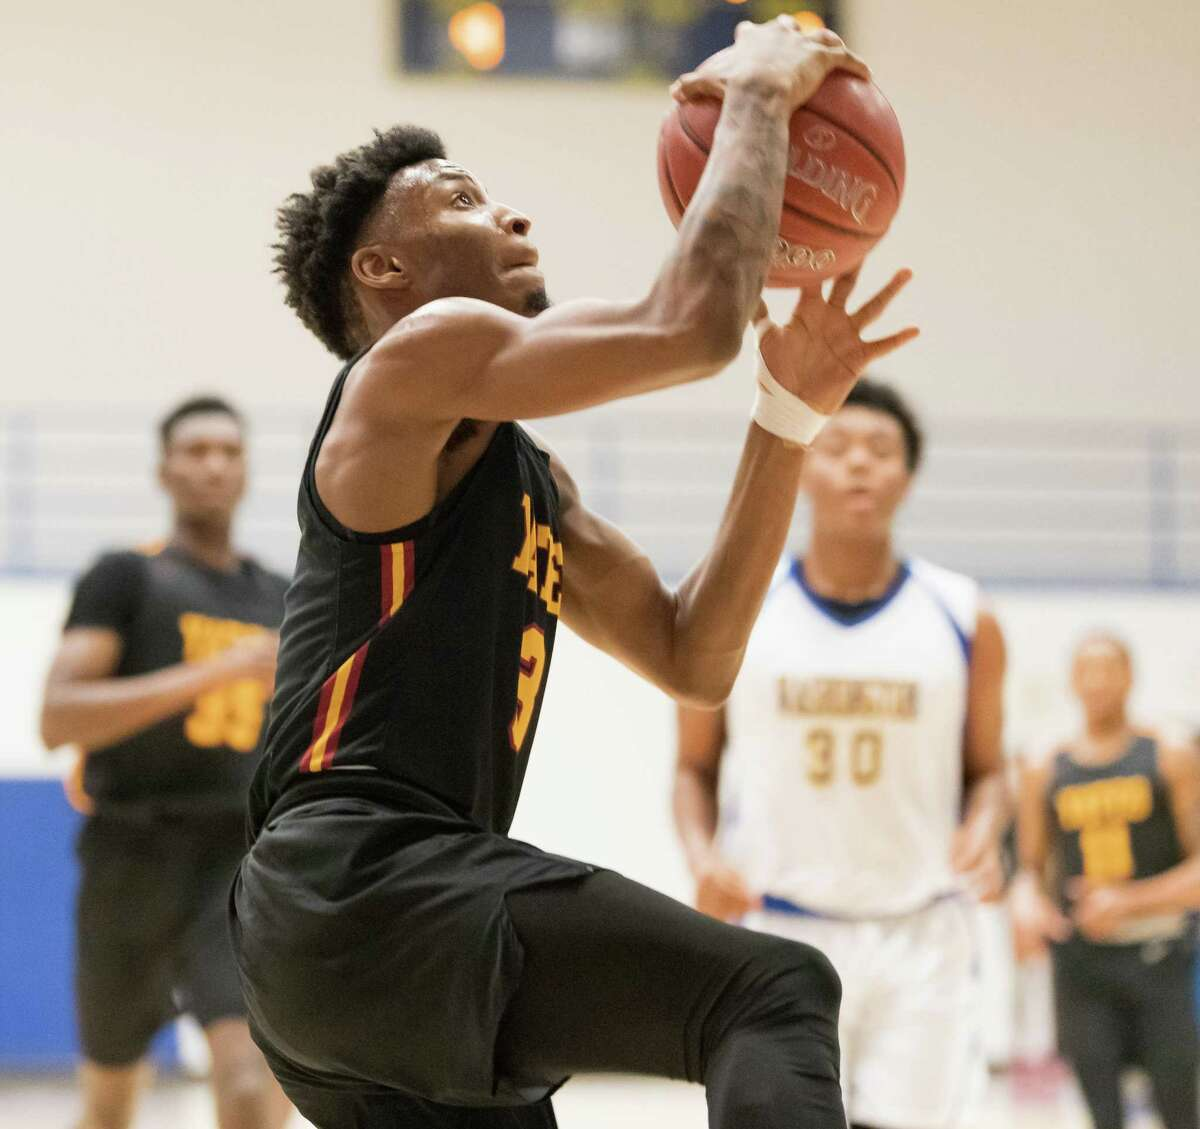 Antwon Norman (3) of the Yates Lions goes for a layup in the first half against the Washington Eagles in a High School basketball game on Tuesday, February 4, 2020 at Delmar Pavilion in Houston Texas.